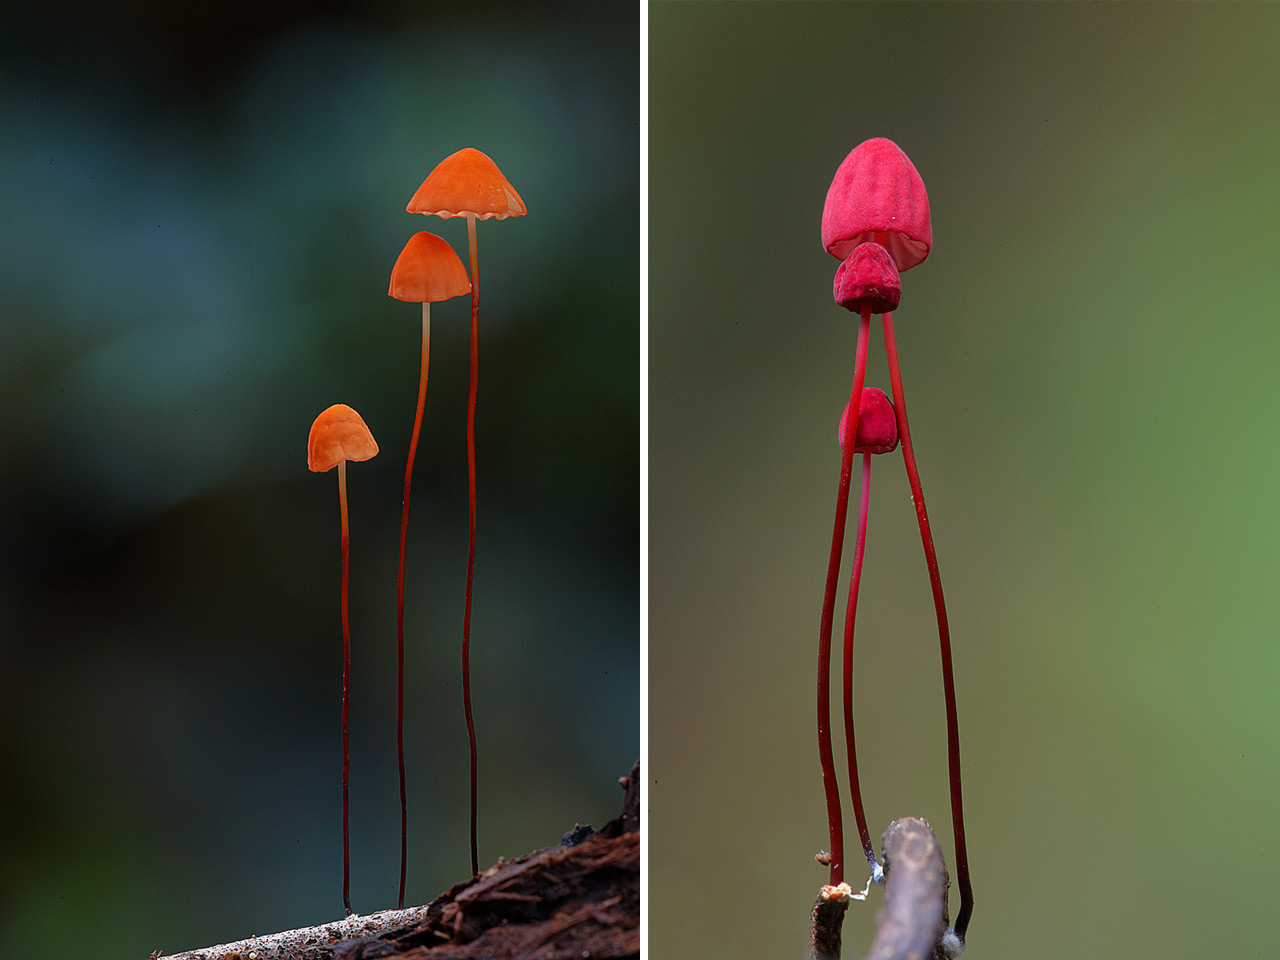 Fantastic Fungi: The Startling Visual Diversity of Mushrooms Photographed by Steve Axford | Colossal